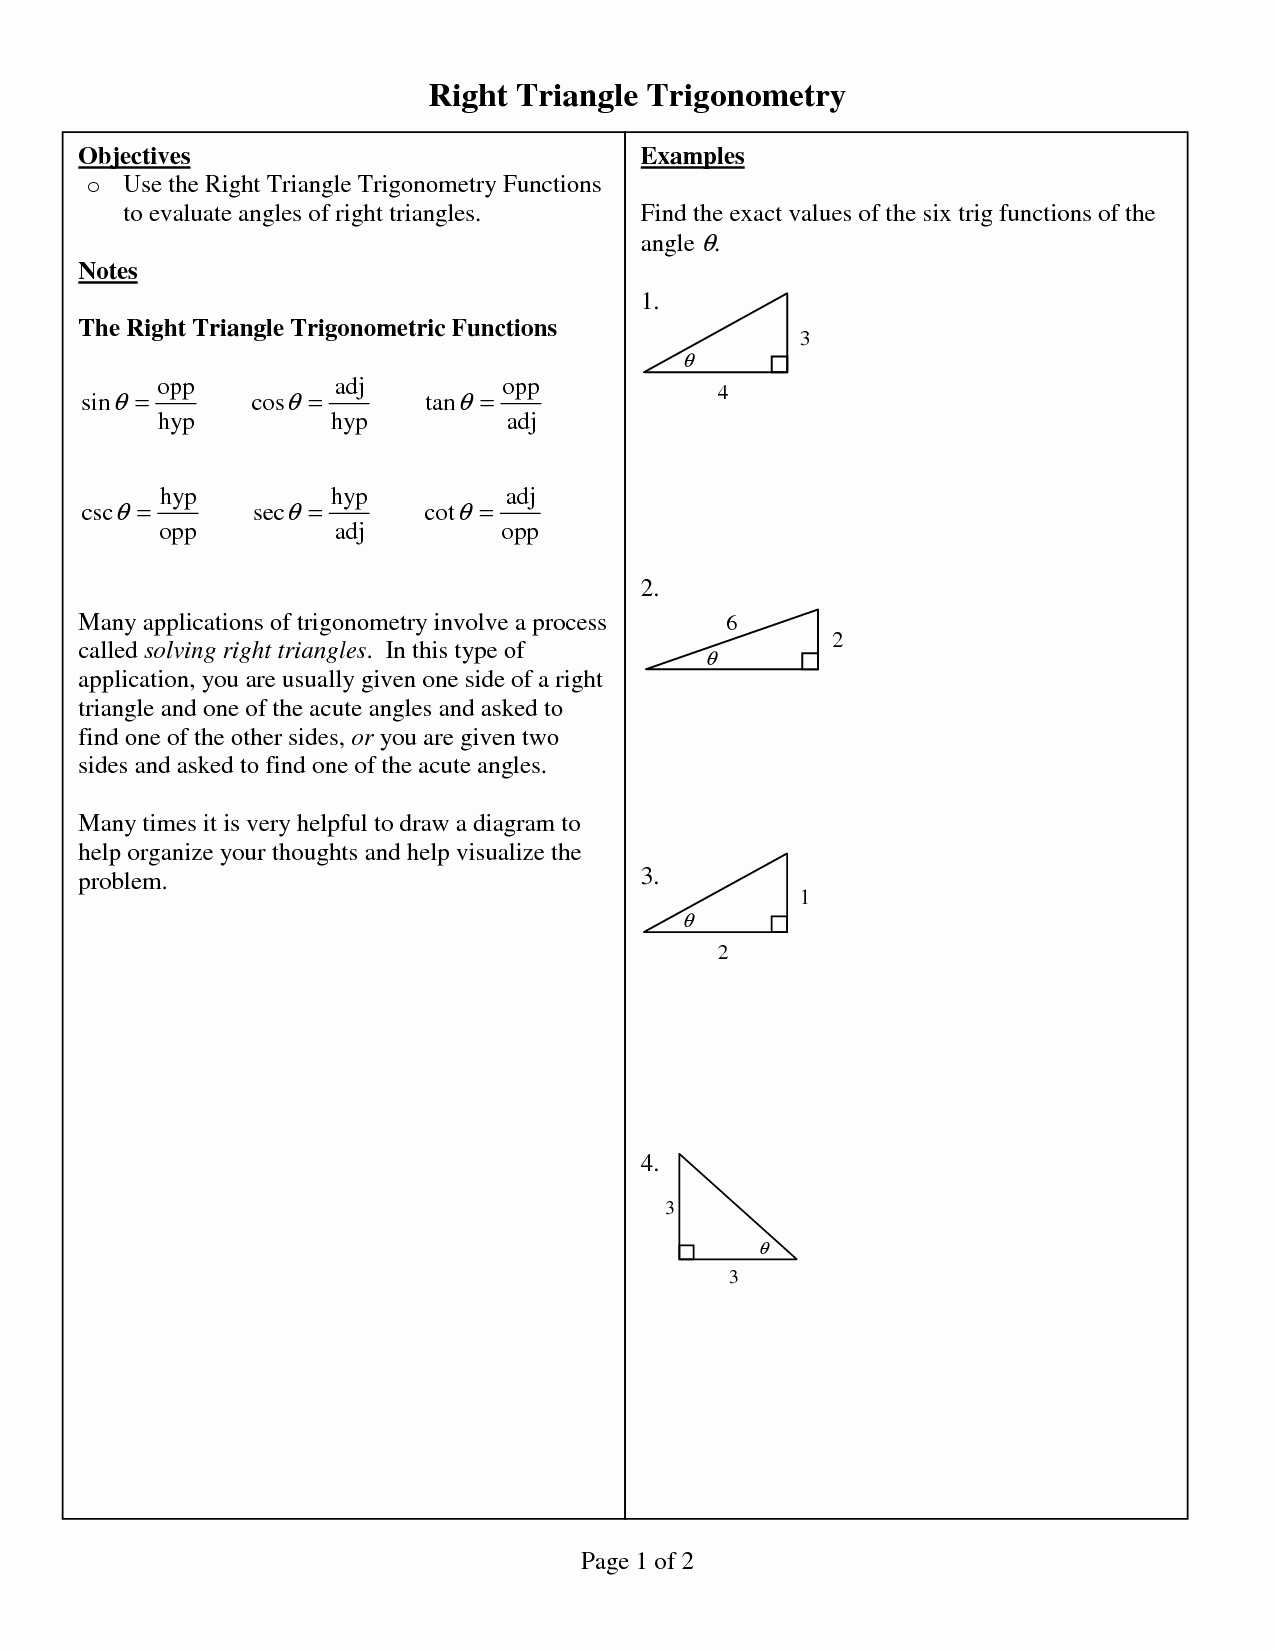 Right Triangle Trigonometry Worksheet Inspirational 11 Best Of Right Triangle Trigonometry Worksheet